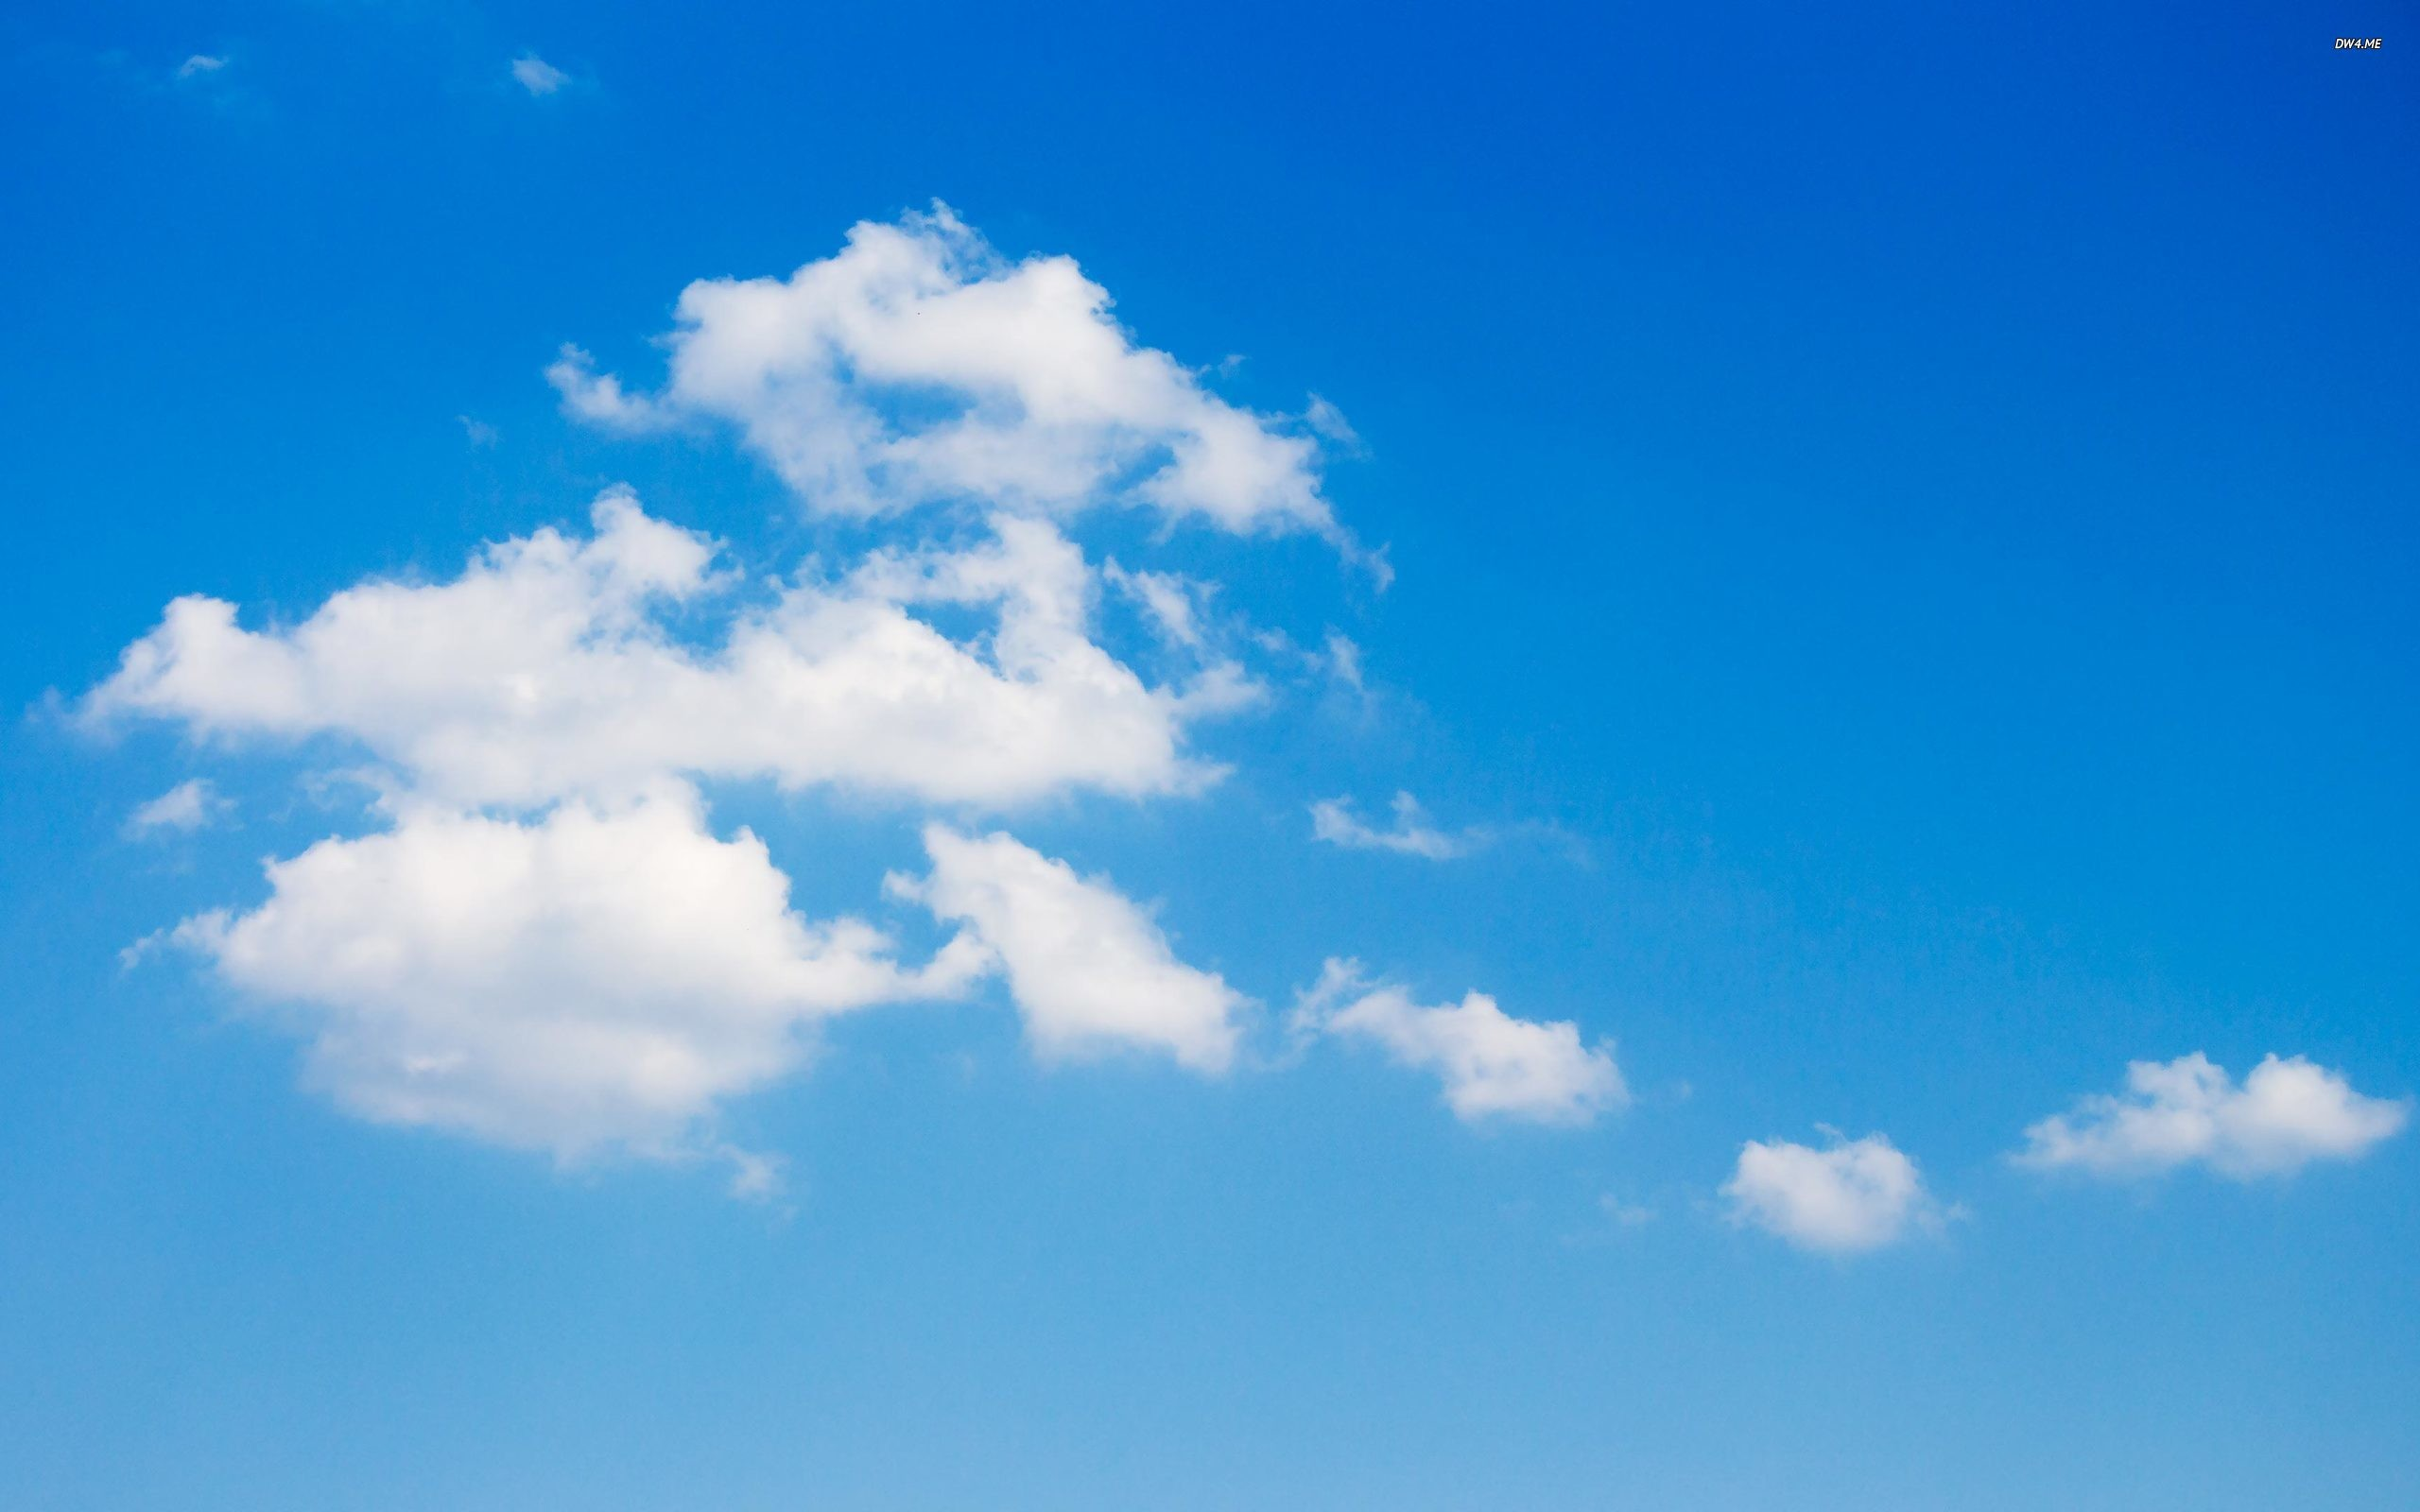 2560x1600 White clouds on the blue sky wallpaper - Nature wallpapers .